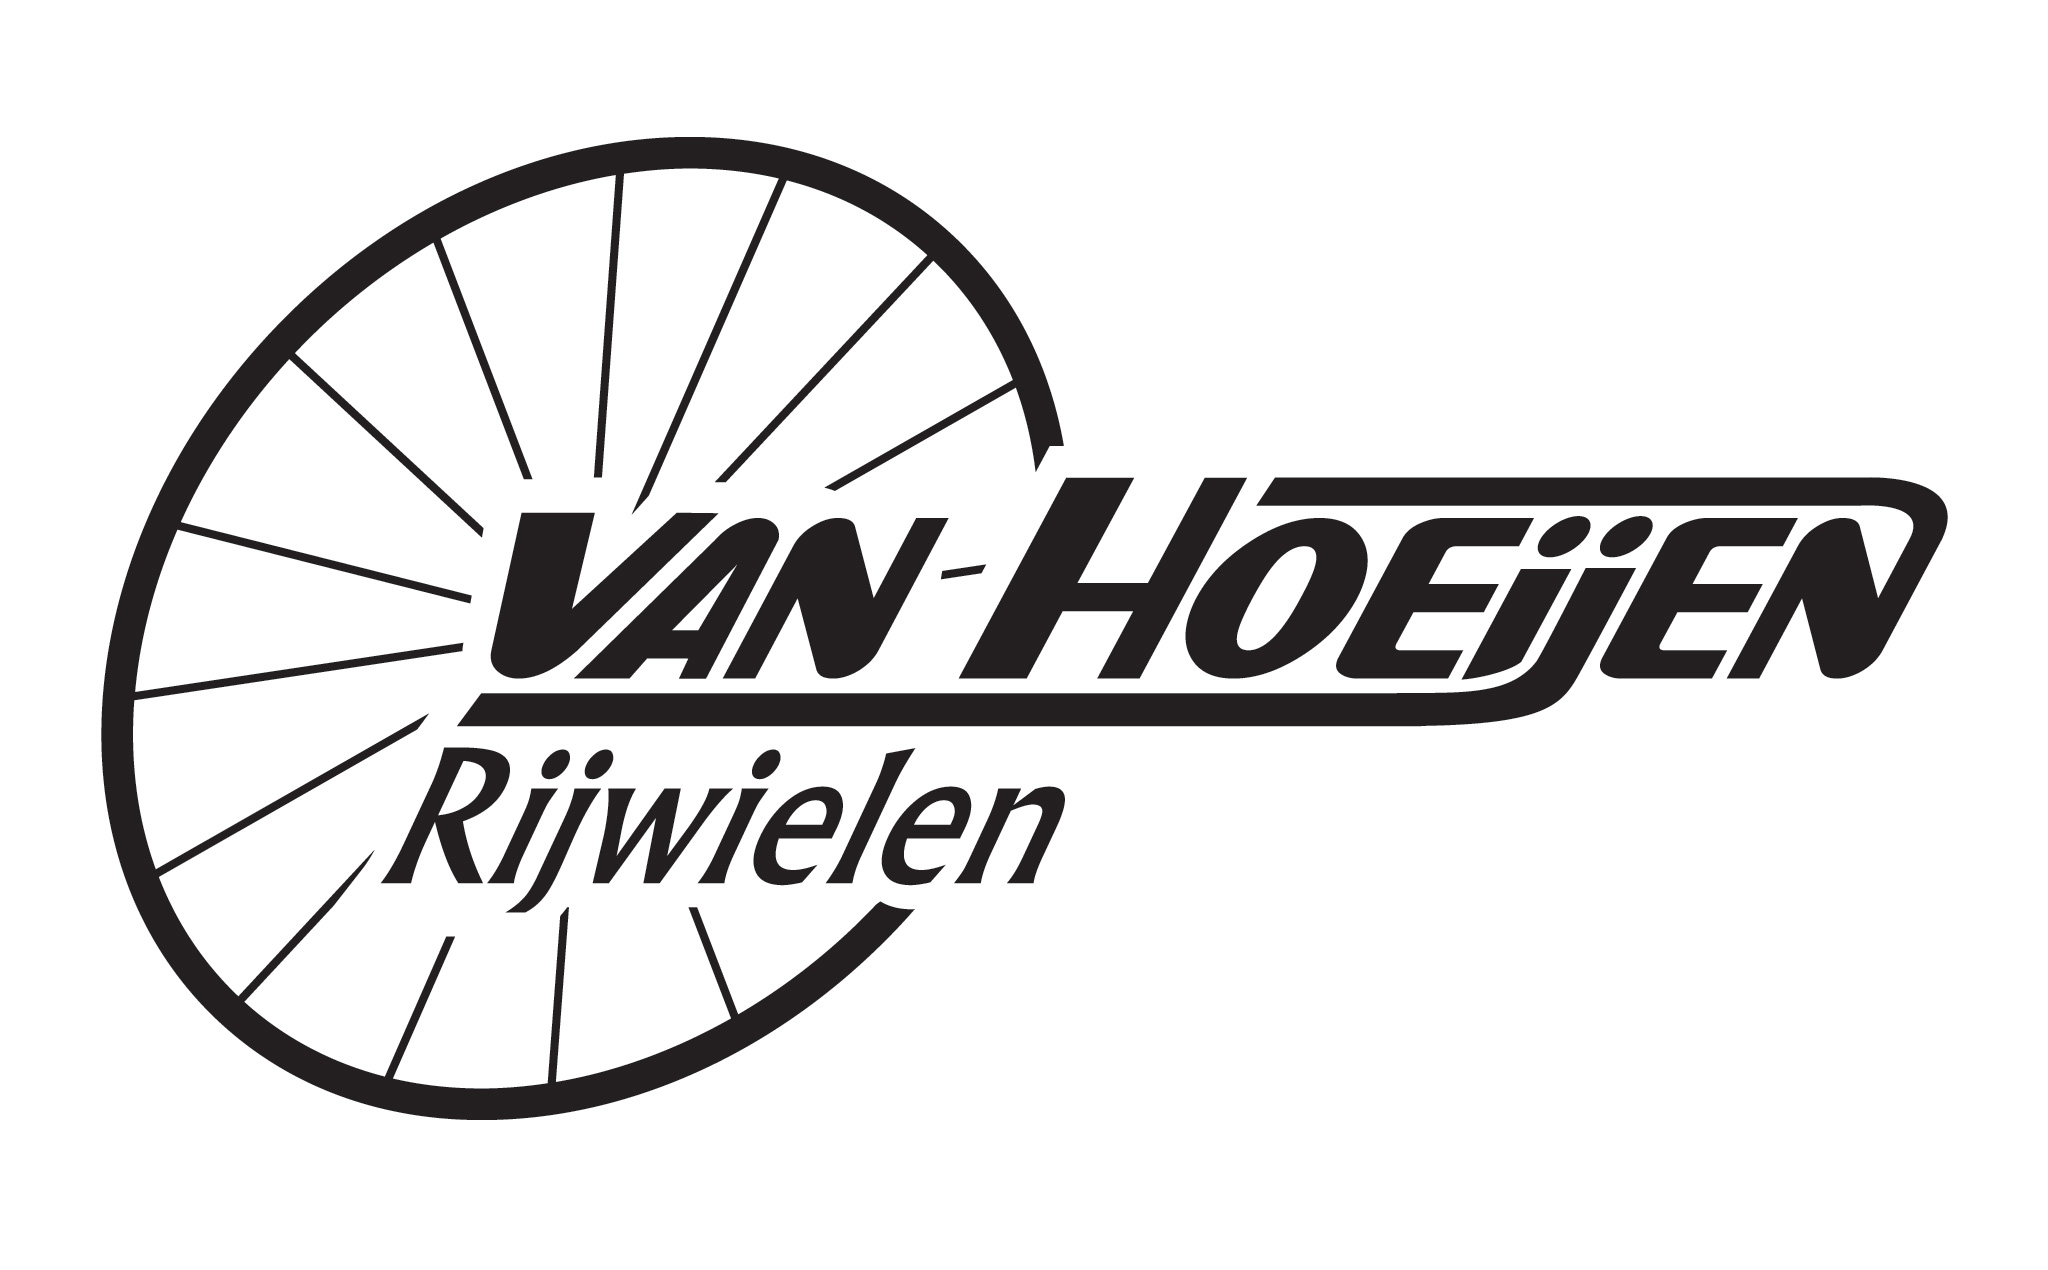 A fun logo design for a bike shop in Amersfoort - The Netherlands.